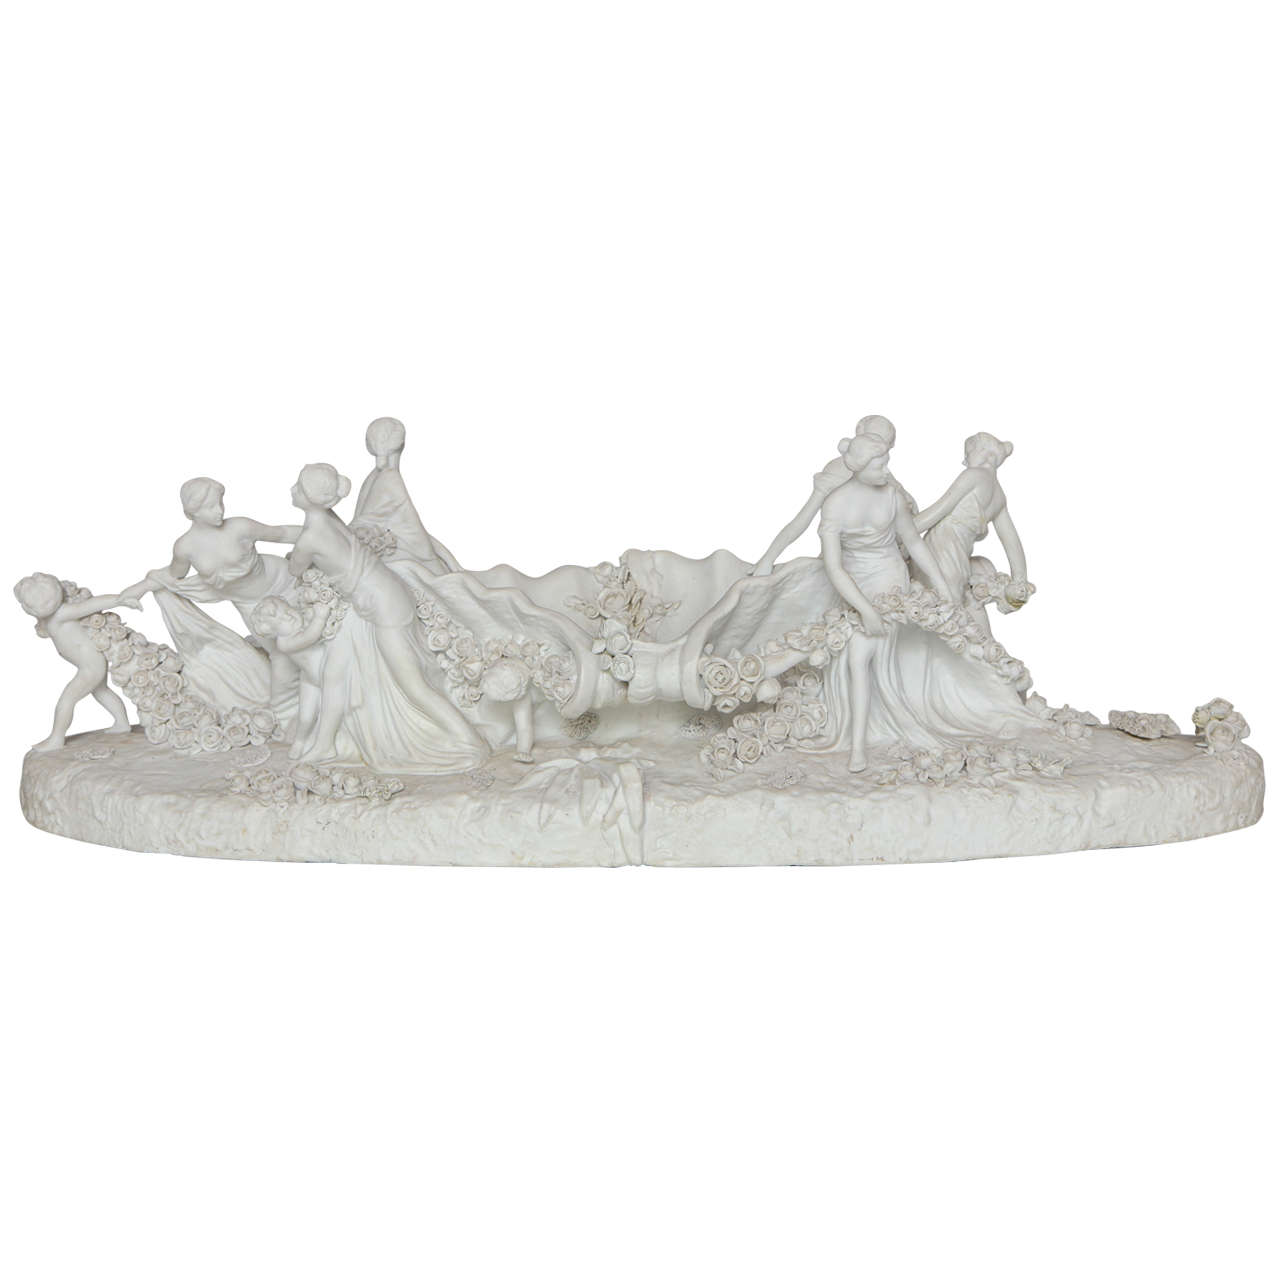 Large White Bisque Sevres Porcelain Figural Centerpiece of Woman and Children